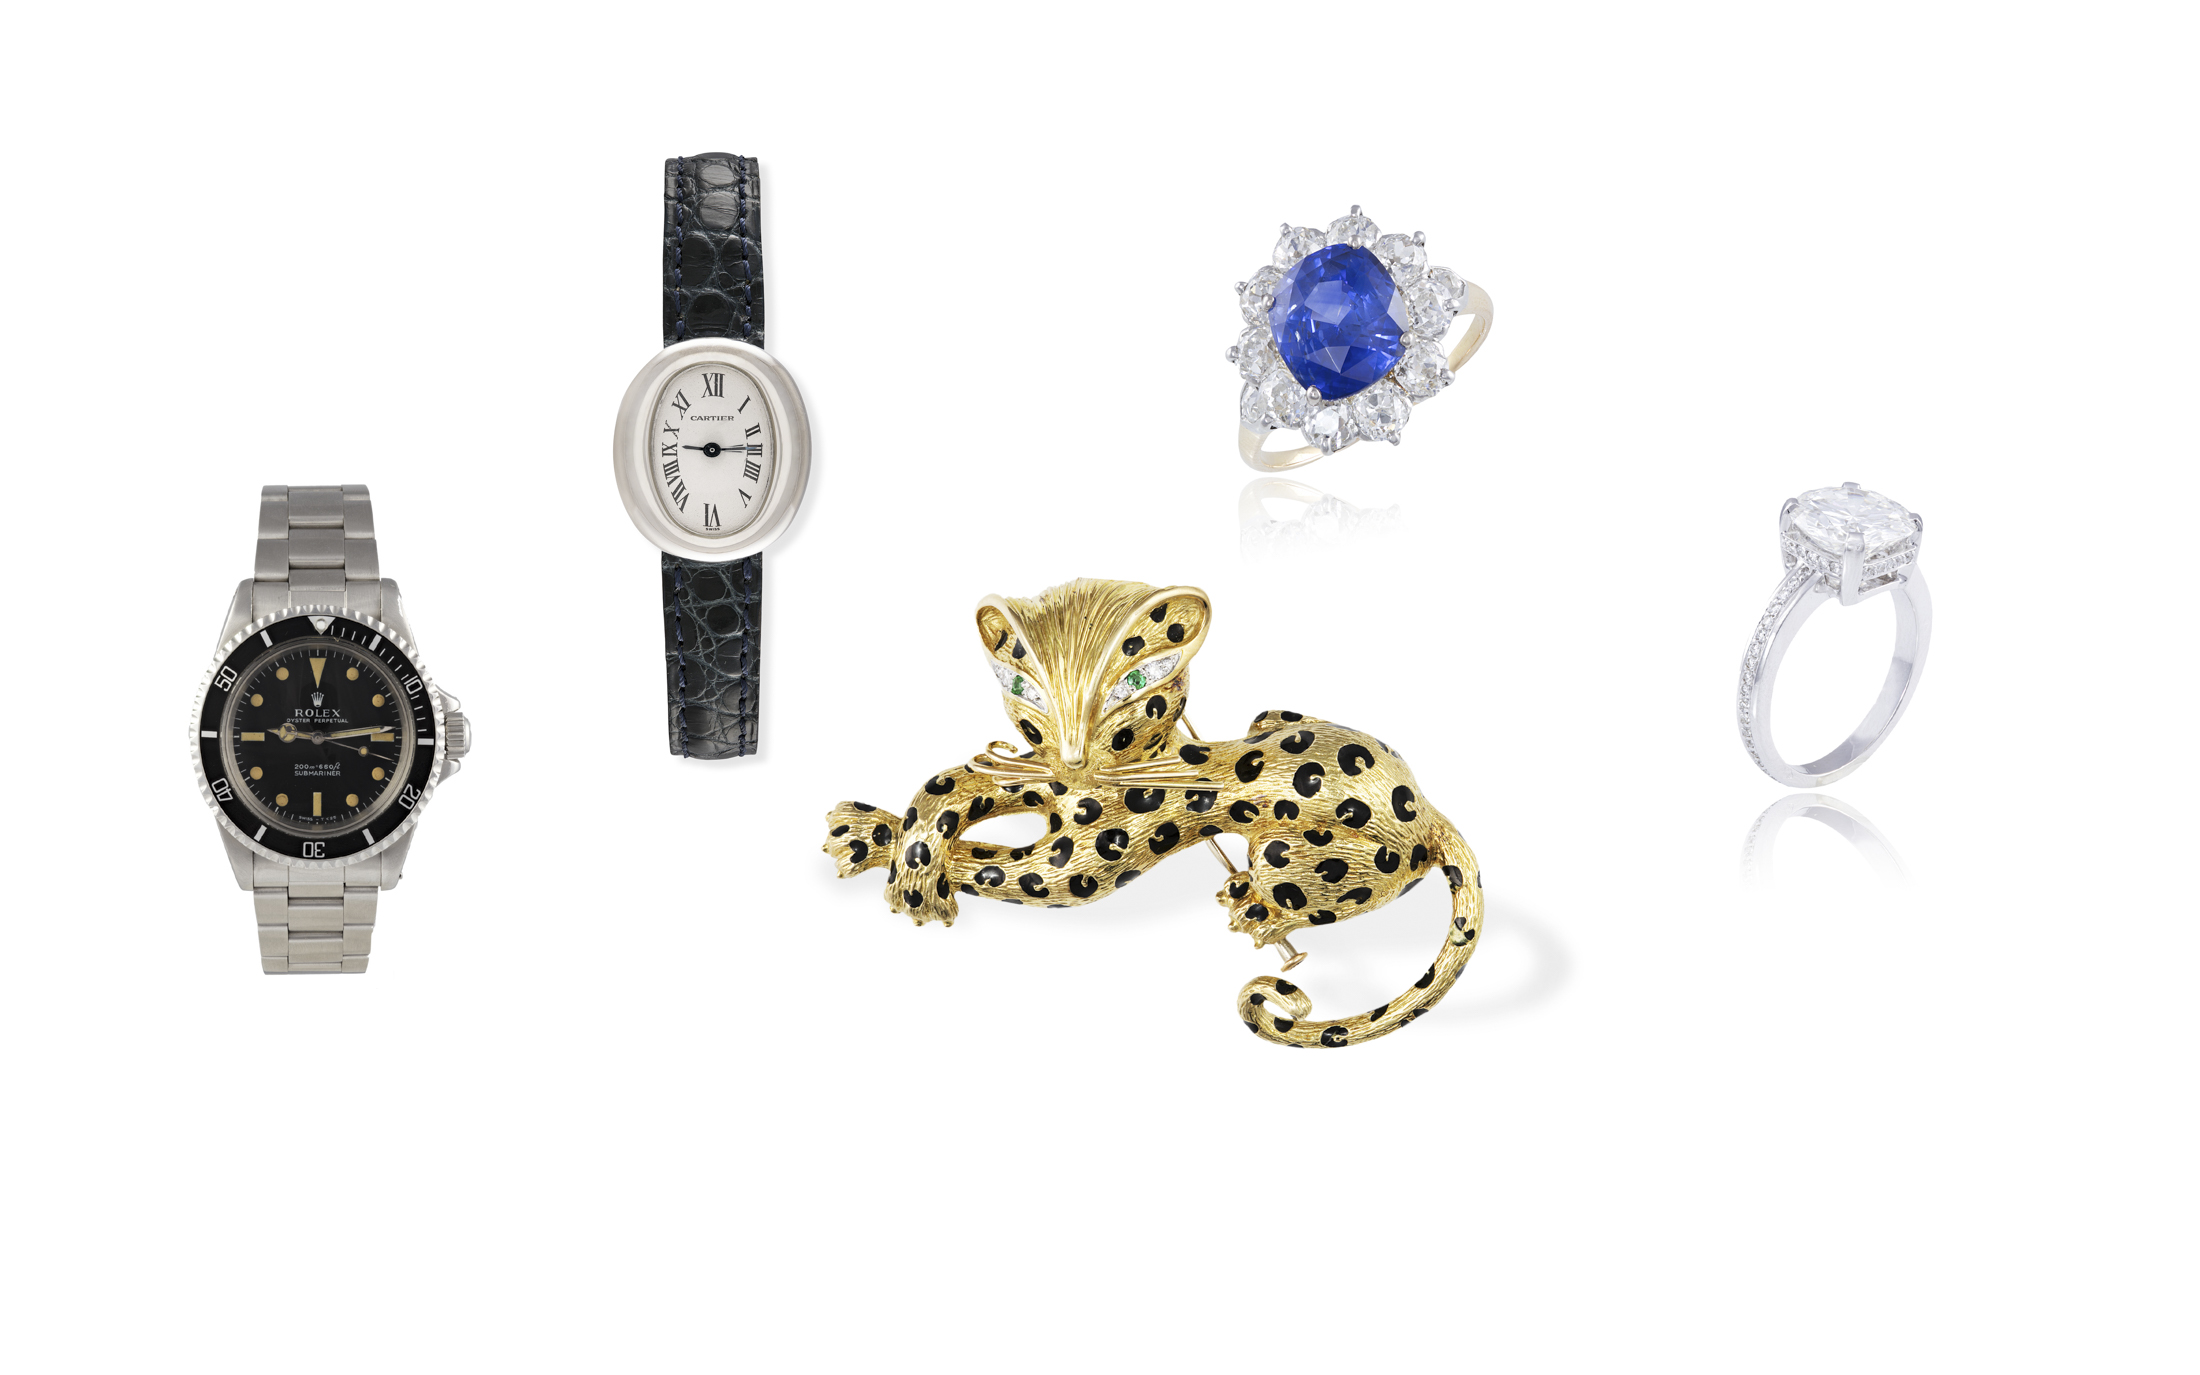 WE ARE NOW ACCEPTING ENTRIES FOR OUR SEPTEMBER SALE OF JEWELLERY AND WATCHES